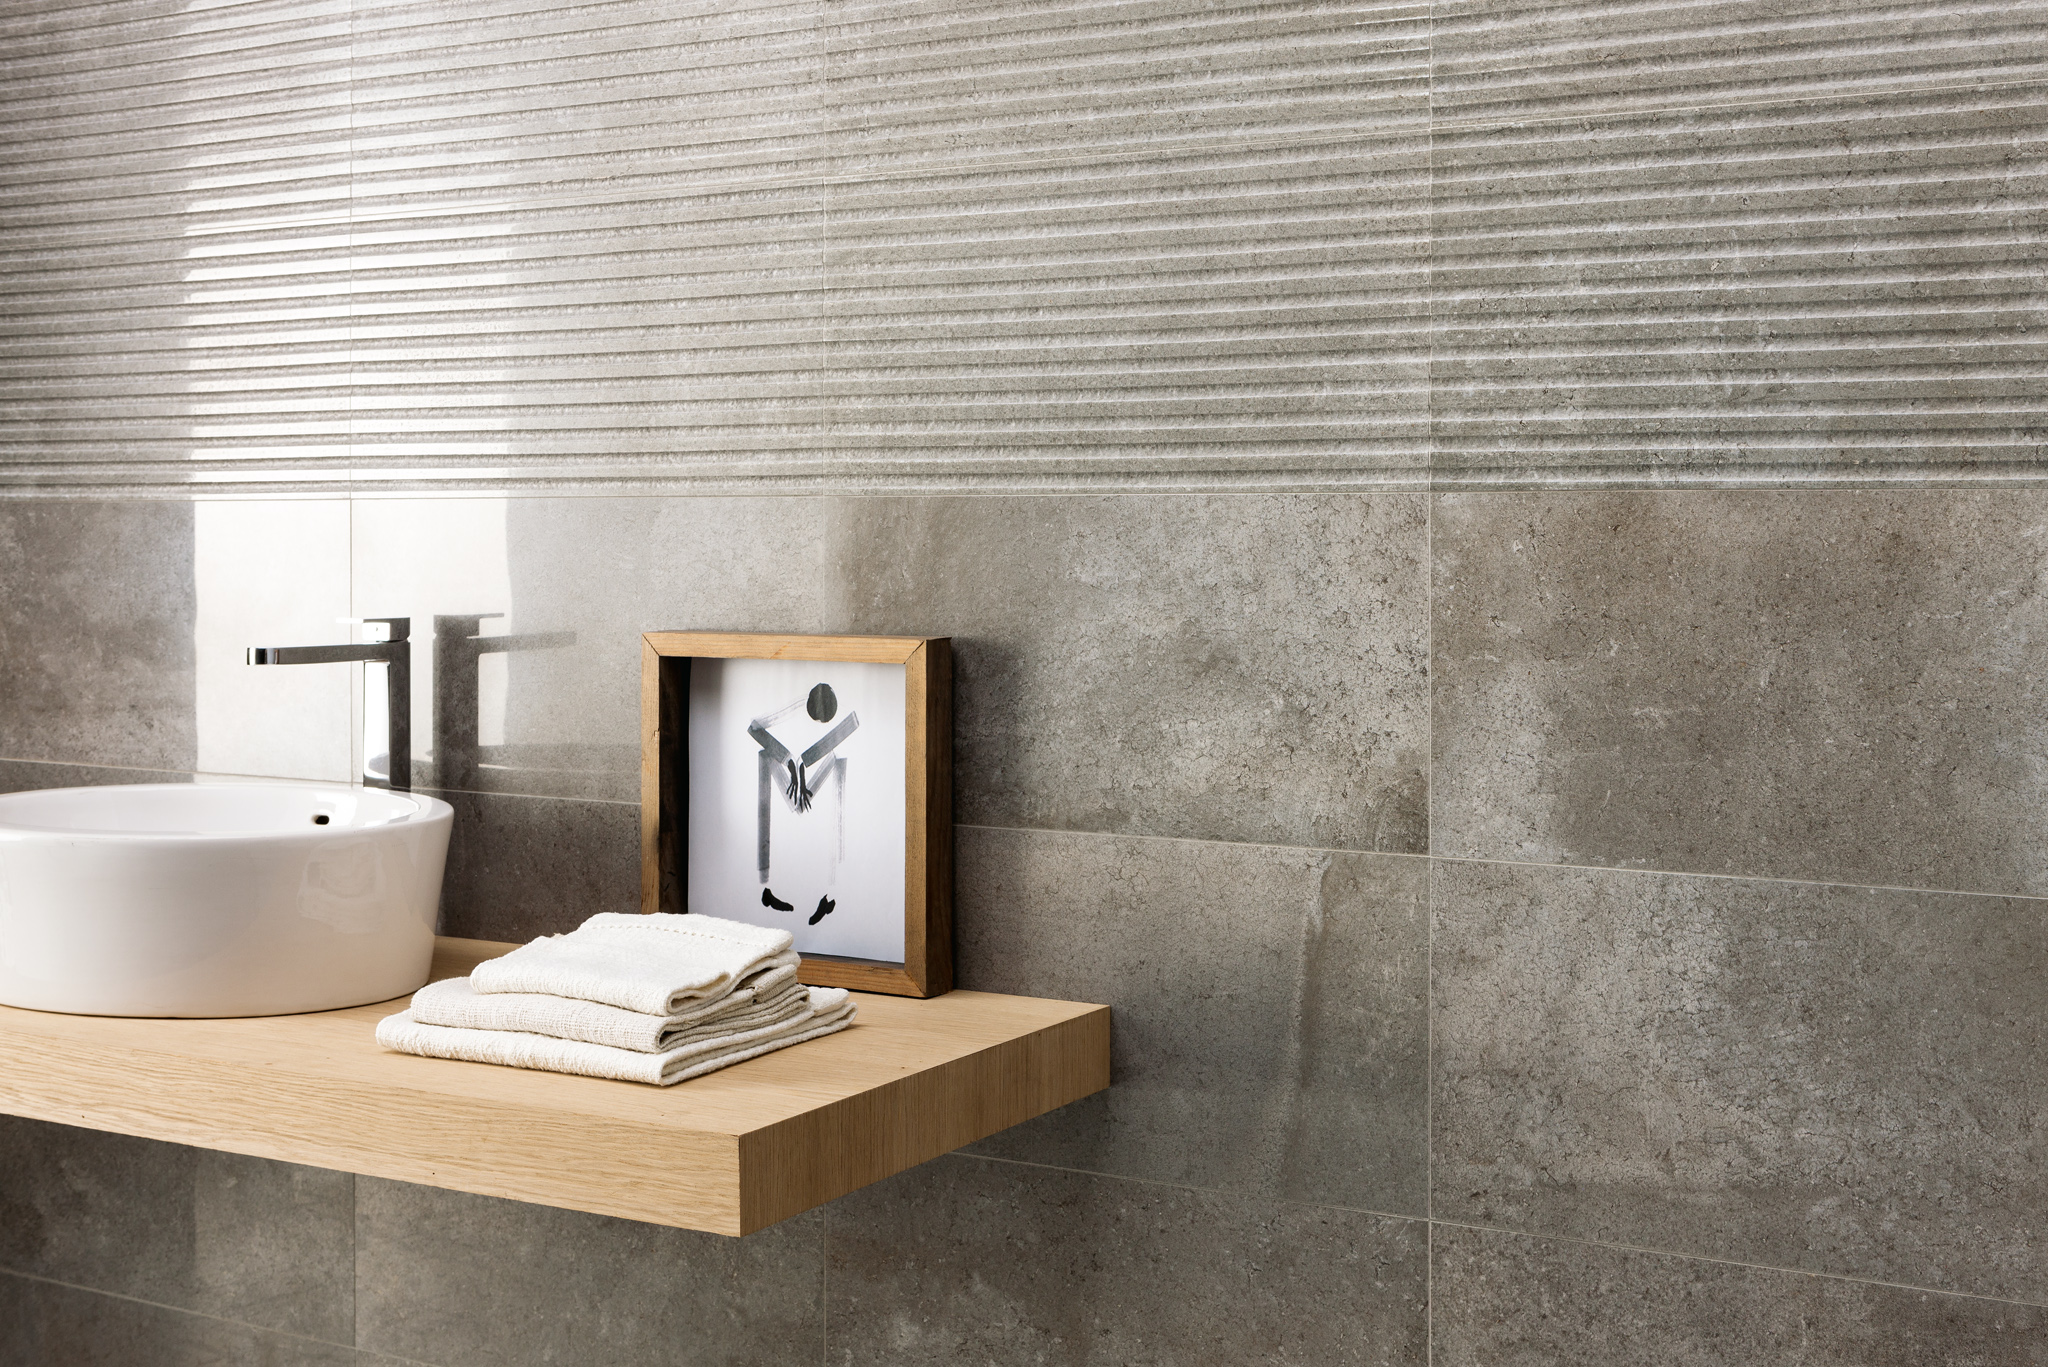 porcelain tile images: Completo range high quality photo